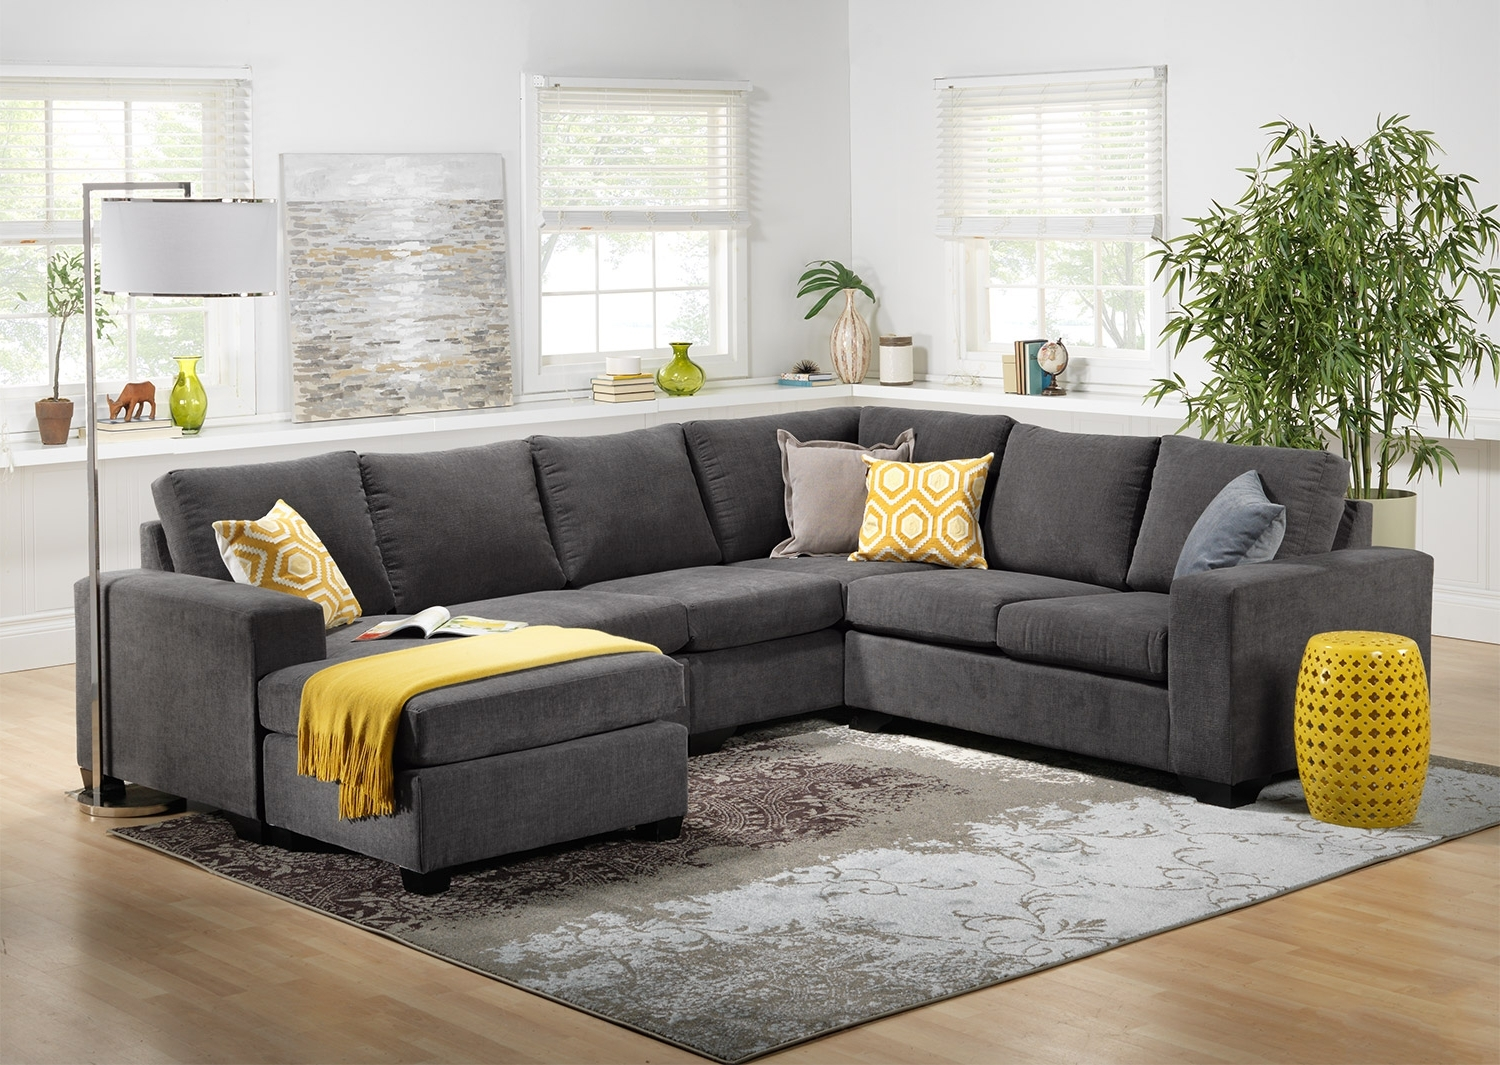 Ontario Canada Sectional Sofas Throughout 2018 Used Sectional Sofas For Sale Edmonton Best Home Furniture Ideas (View 3 of 15)